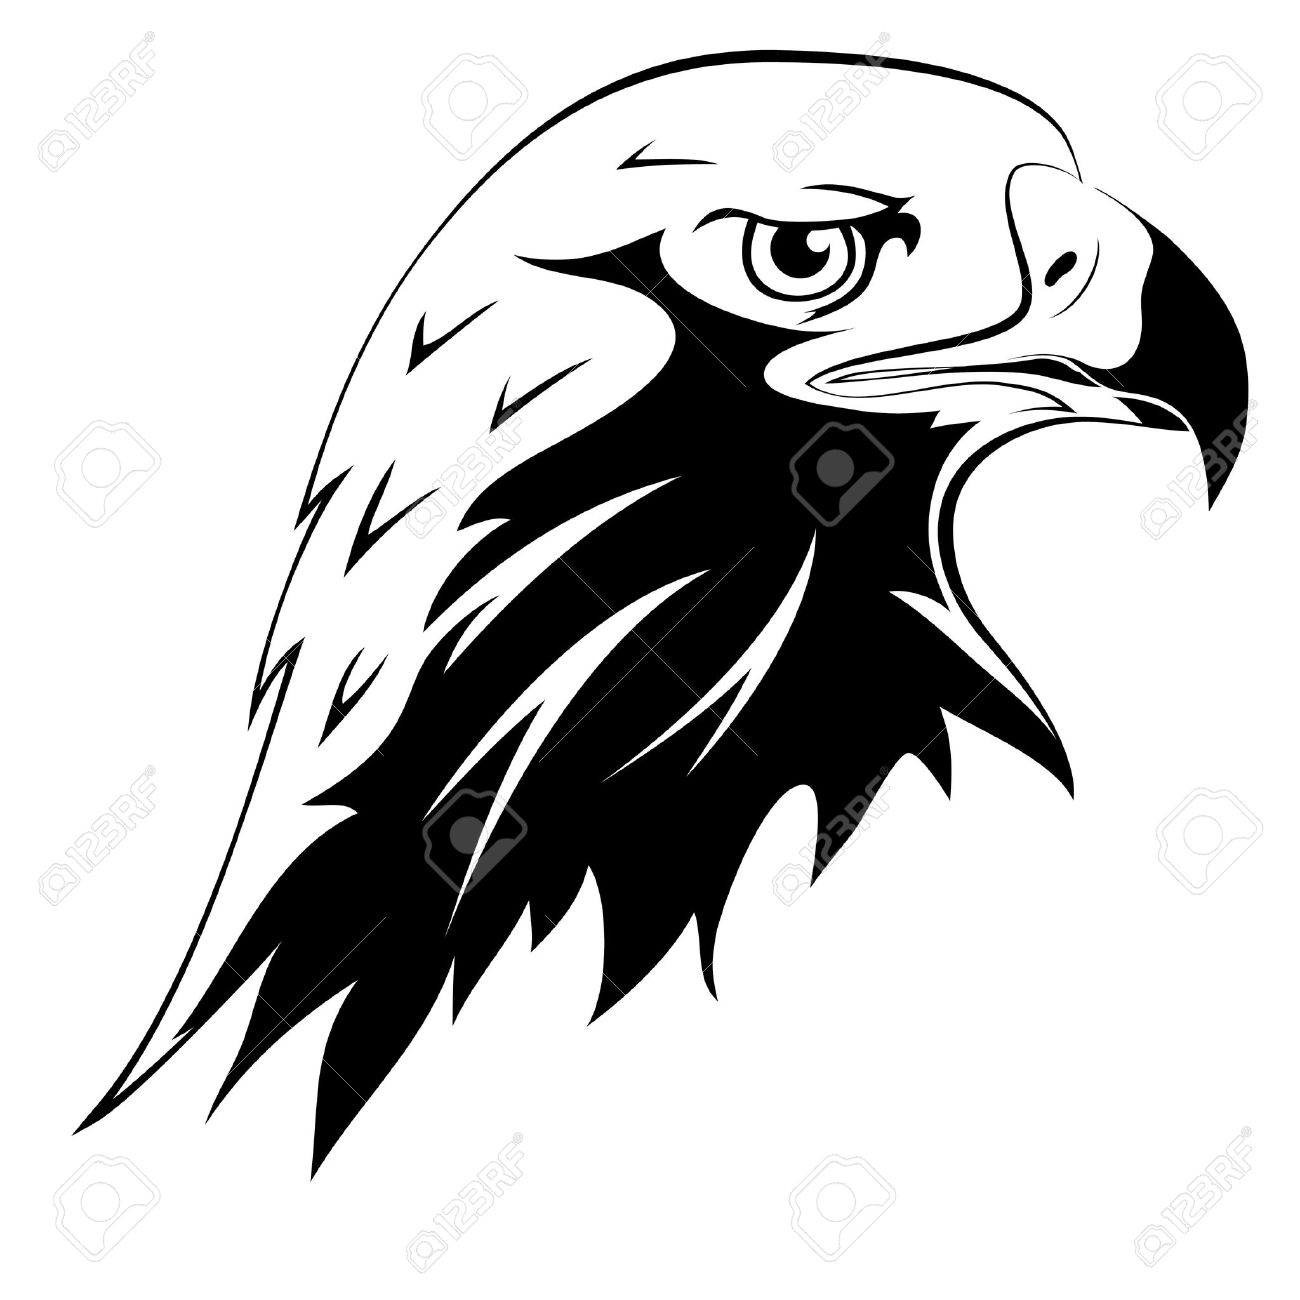 eagle head stock photos u0026 pictures royalty free eagle head images